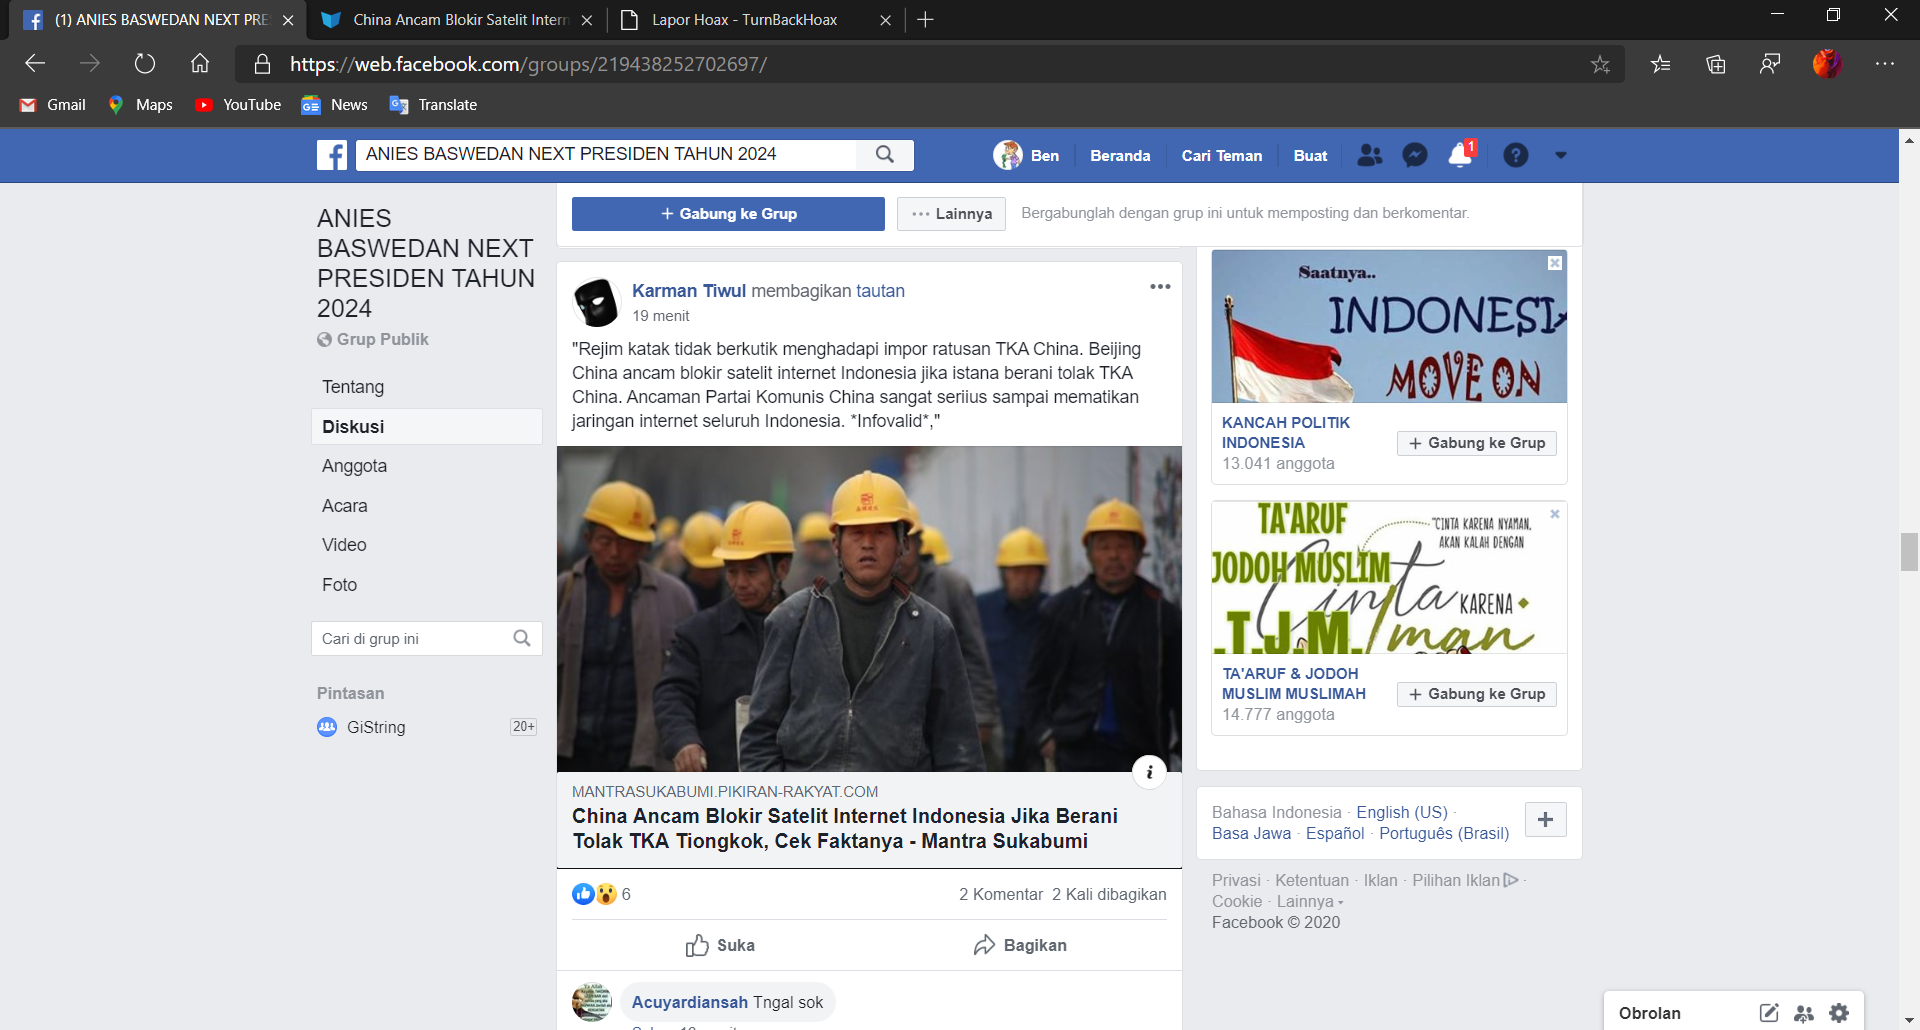 ANIES BASWEDAN NEXT PRESIDEN TAHUN 2024 and 1 more page - Personal - Microsoft​ Edge 10_05_2020 14_52_54.png